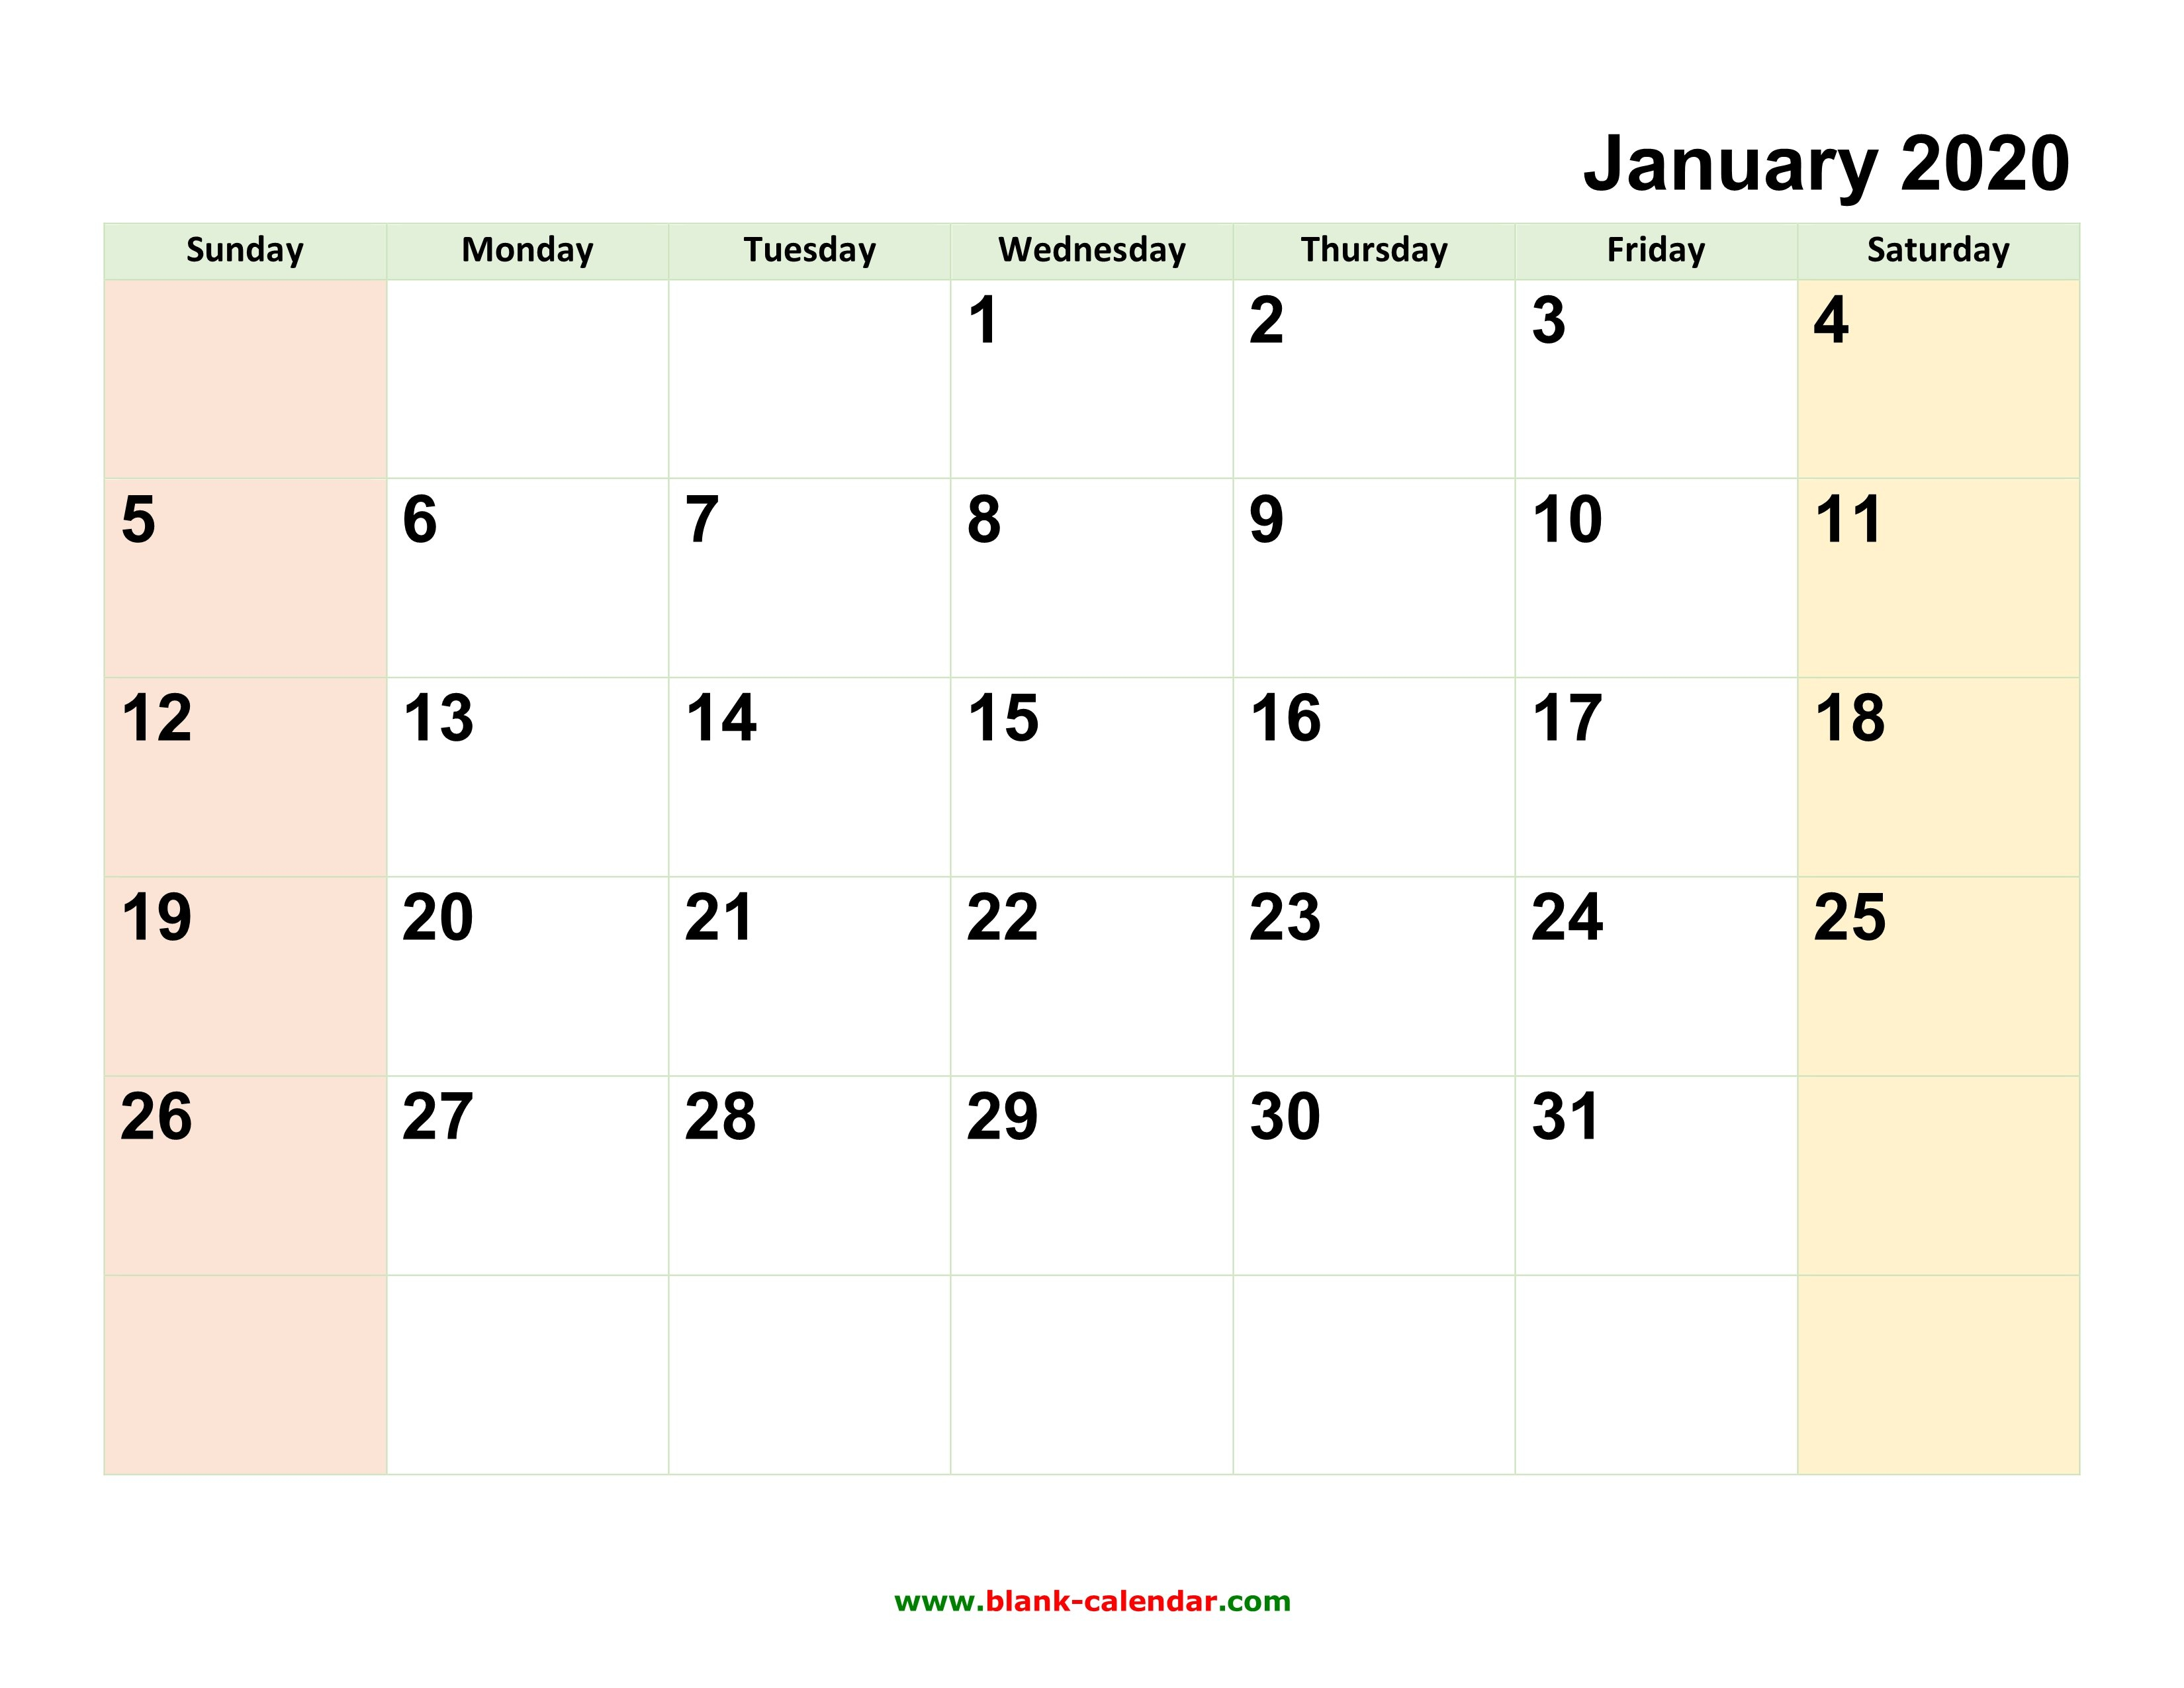 Monthly Calendar 2020 | Free Download, Editable And Printable Calendar You Can Edit Free